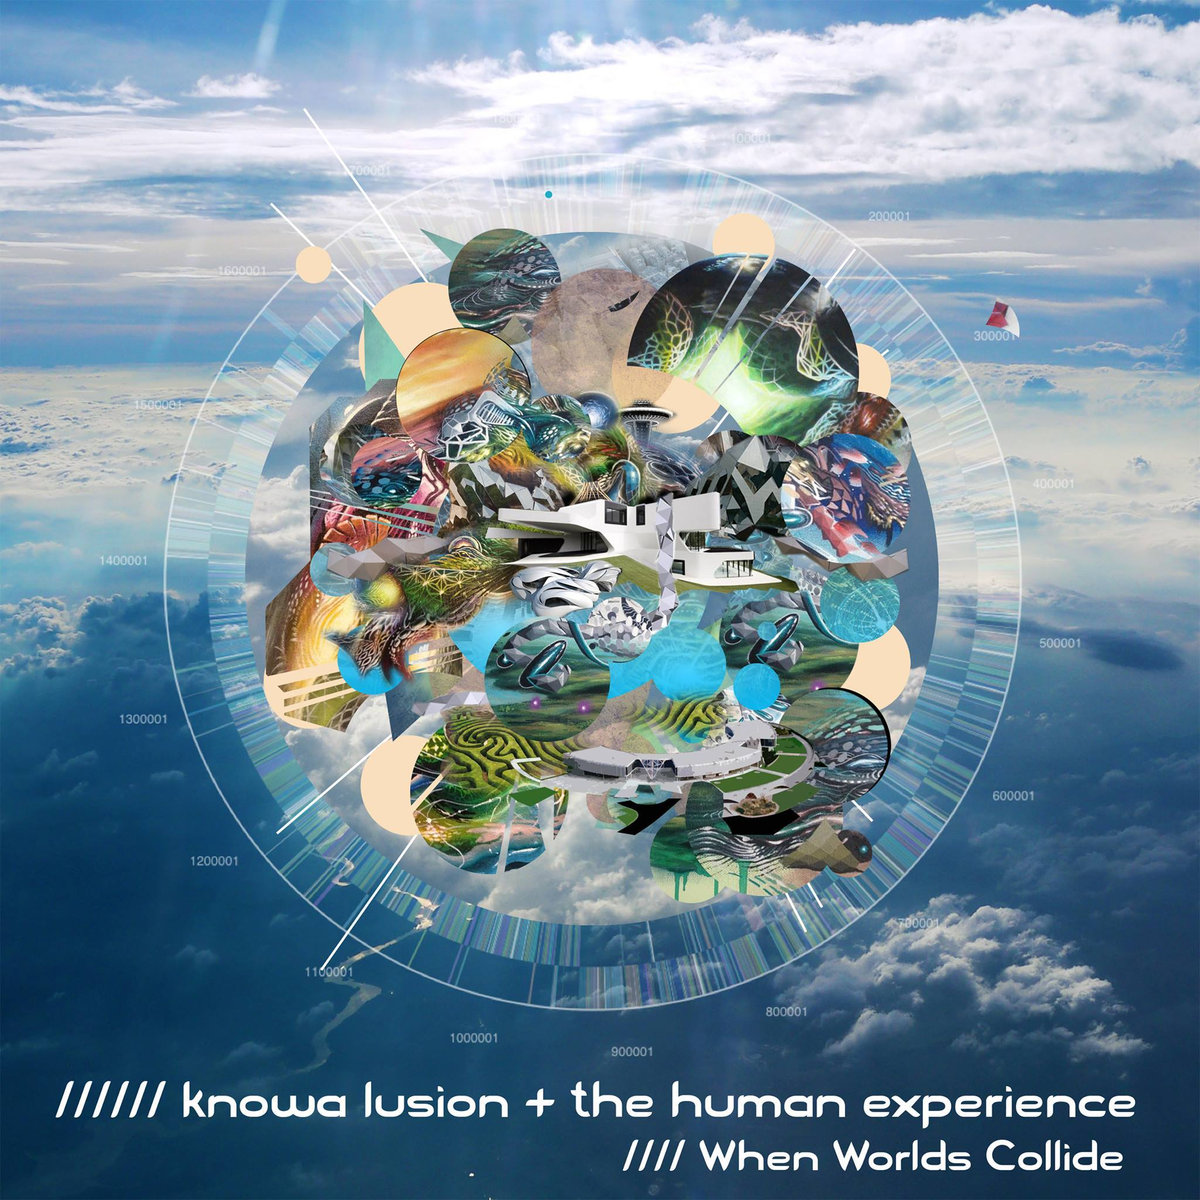 Knowa Lusion and The Human Experience - When Worlds Collide (artwork)